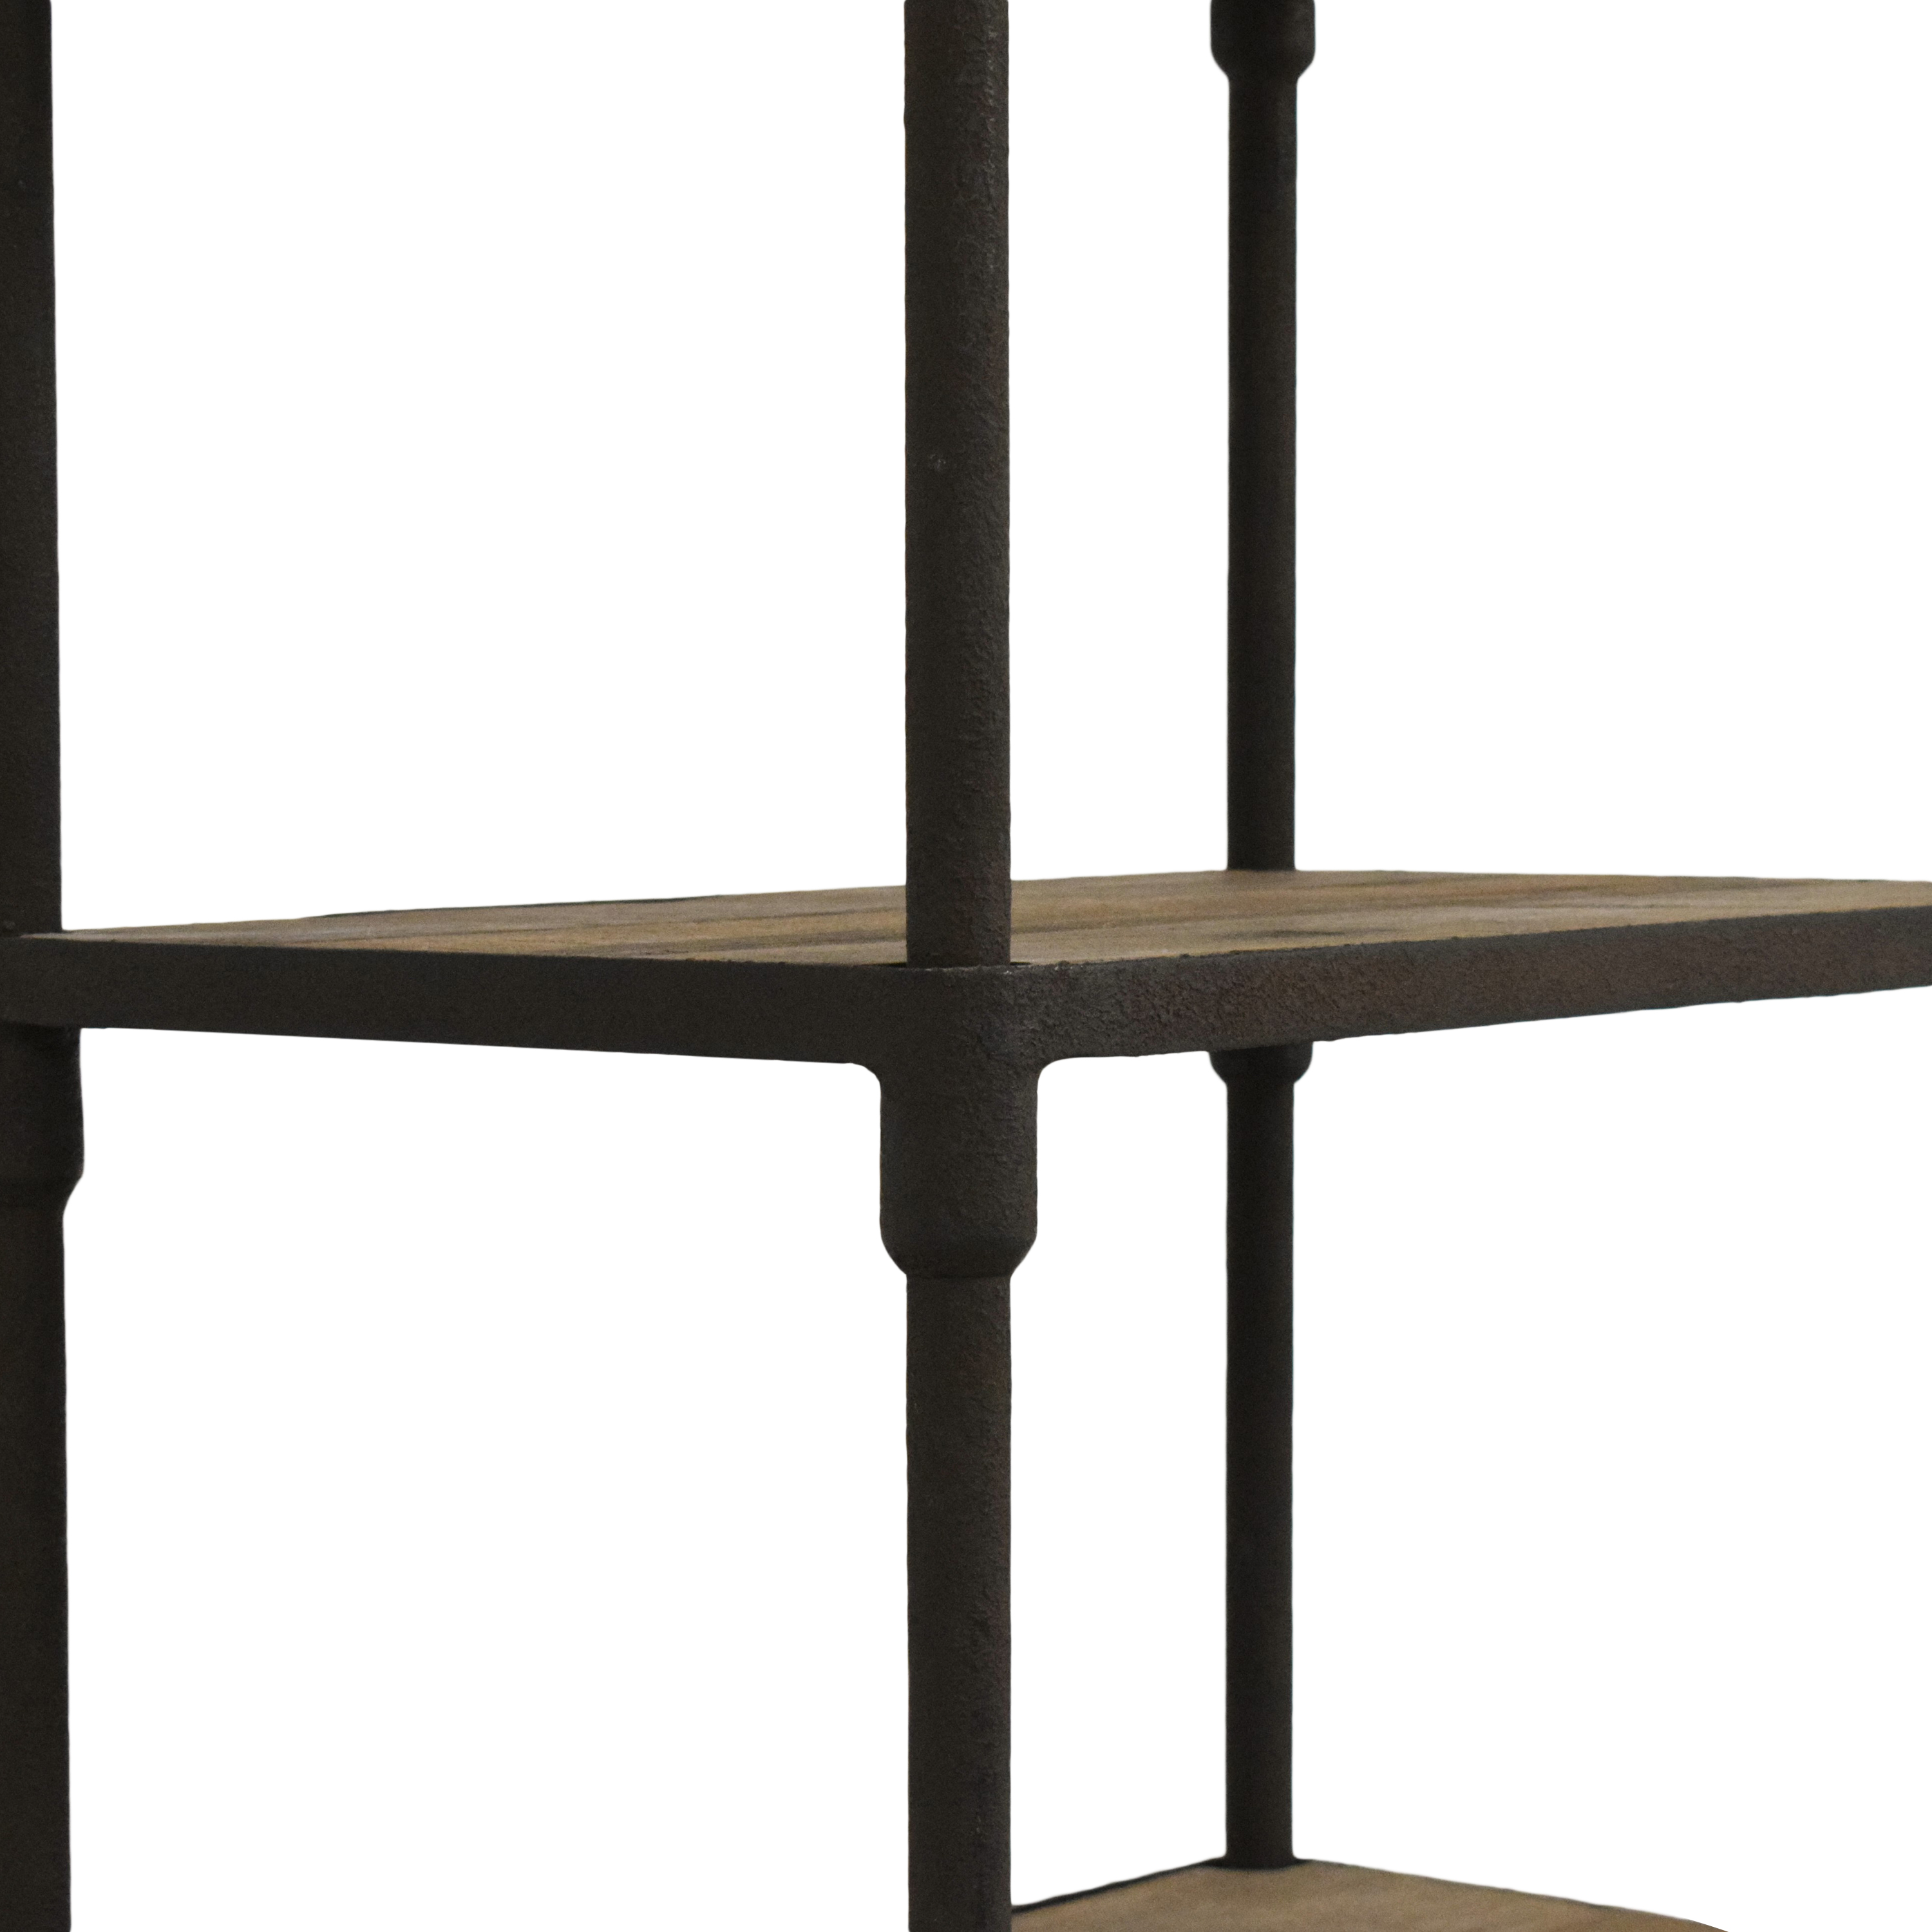 Restoration Hardware Restoration Hardware Dutch Industrial Tower used